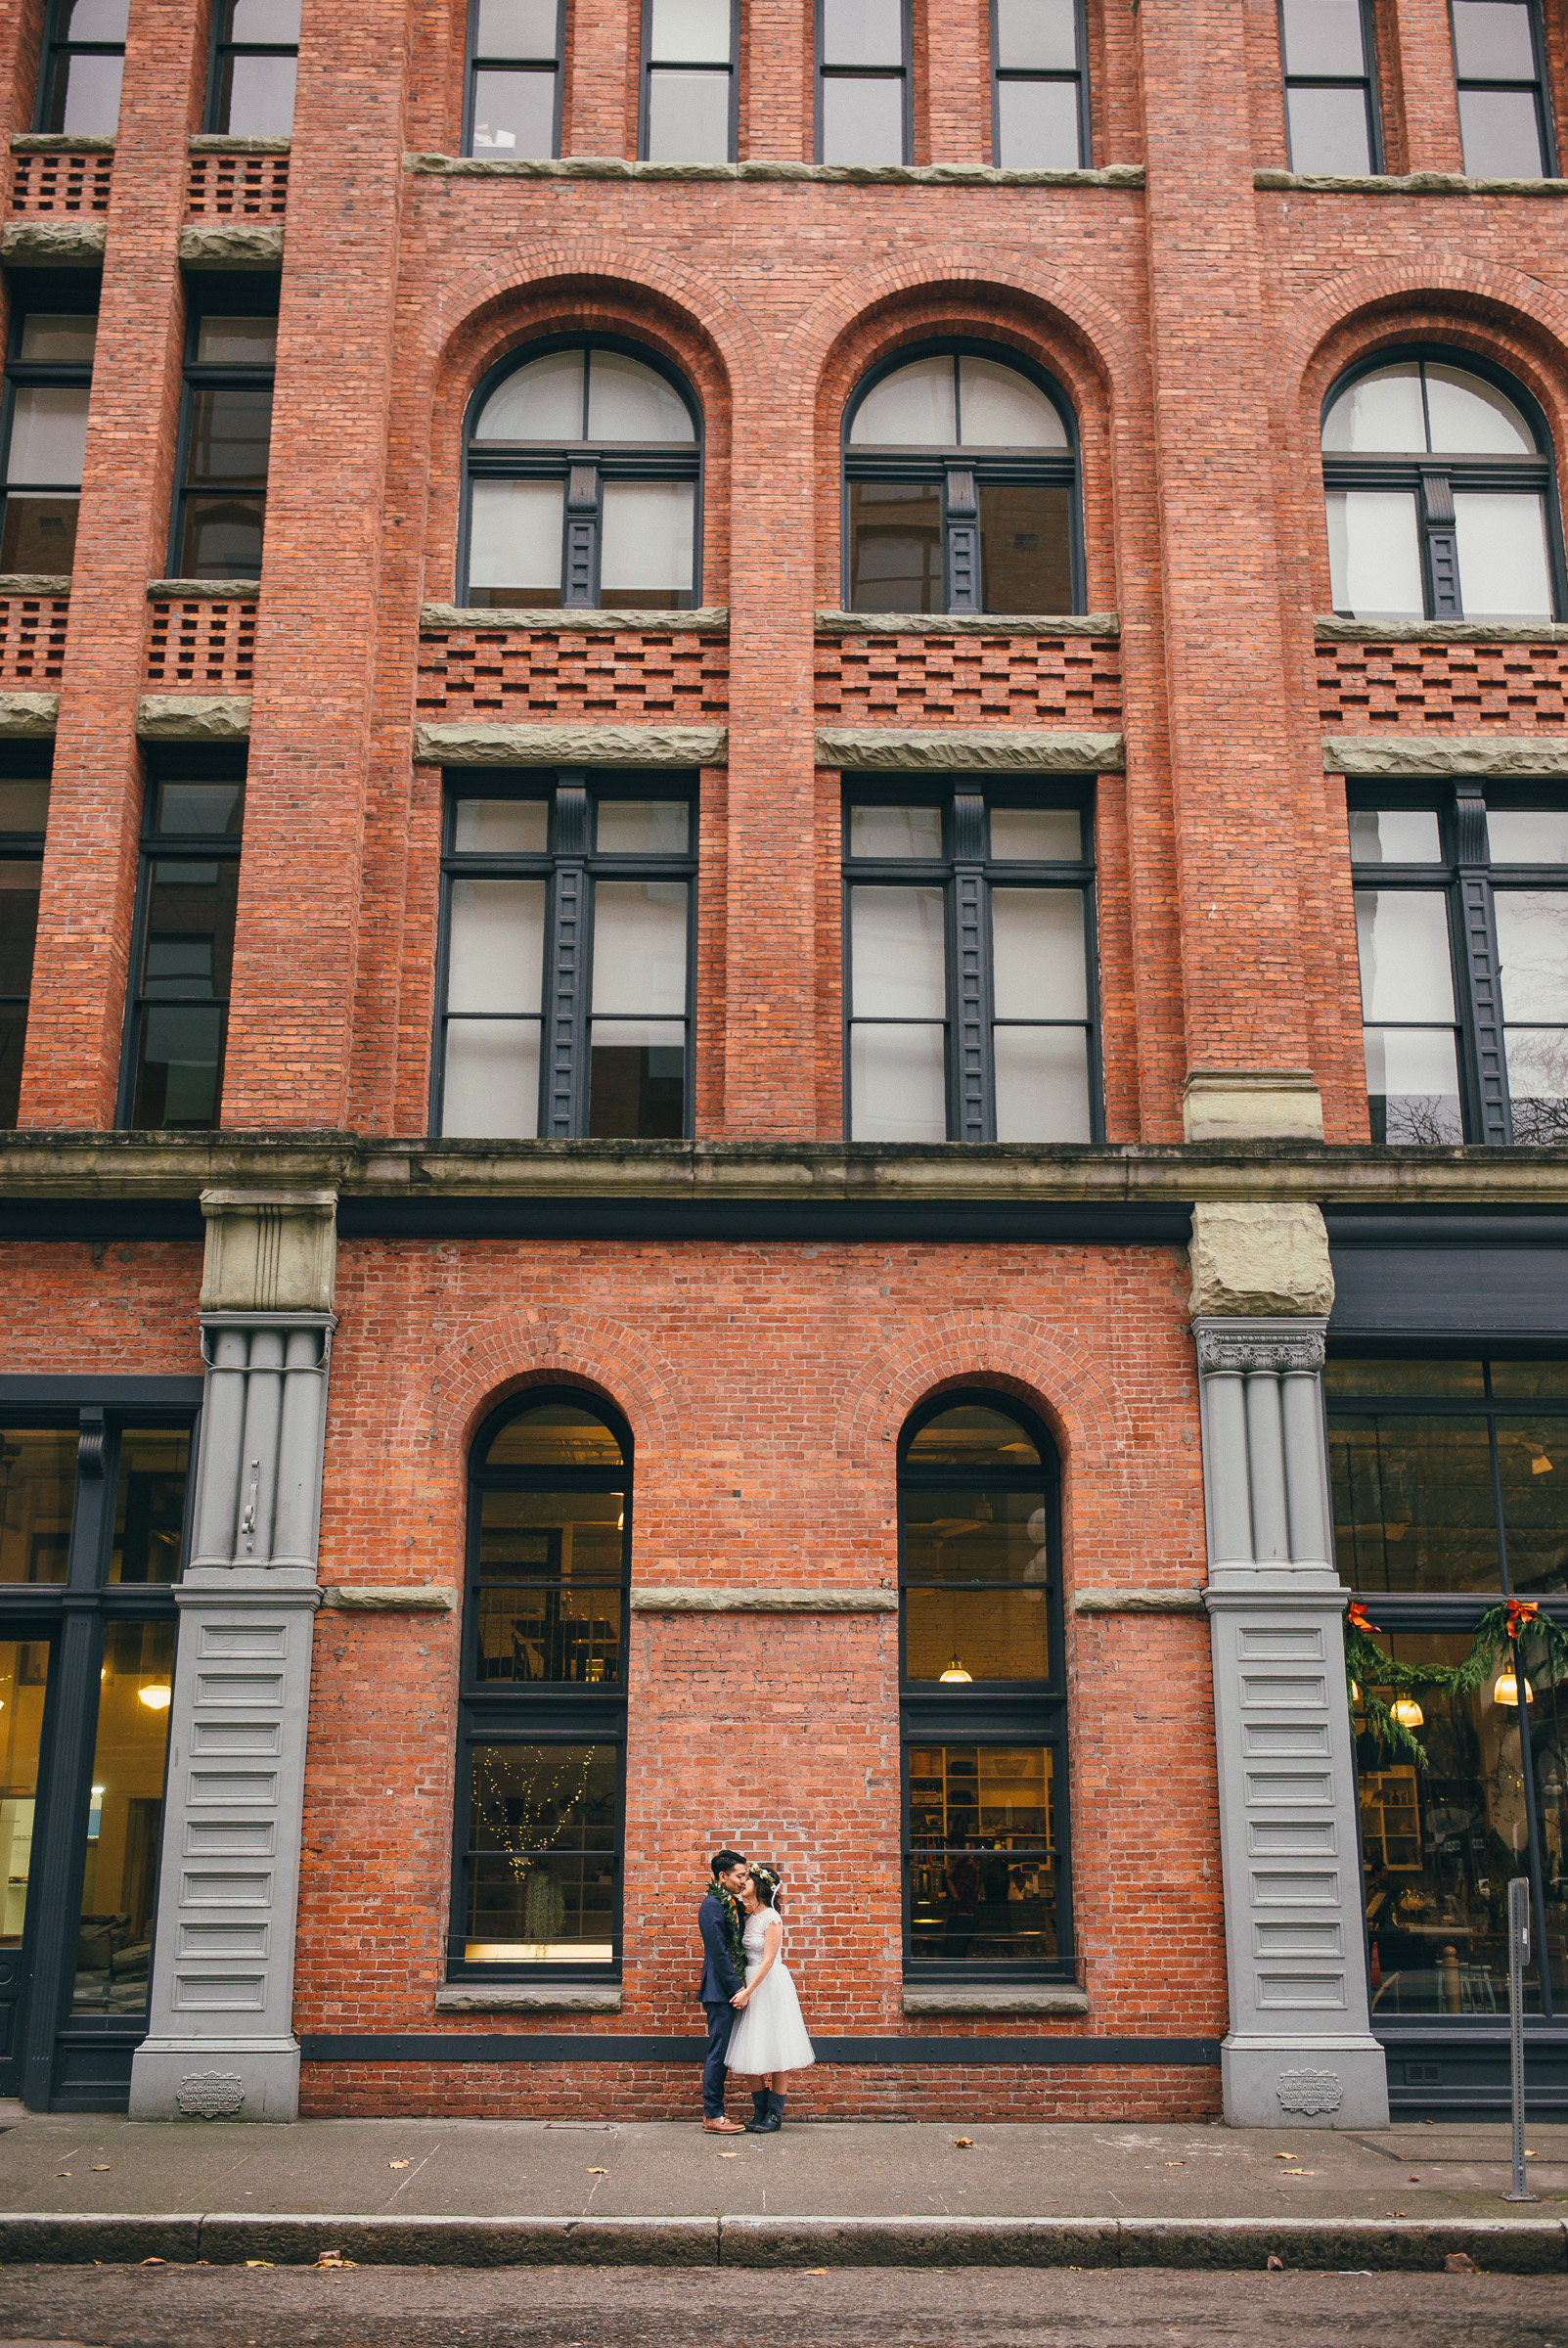 Bride and Groom Portrait Against Brick Building on their Wedding Day in Seattle